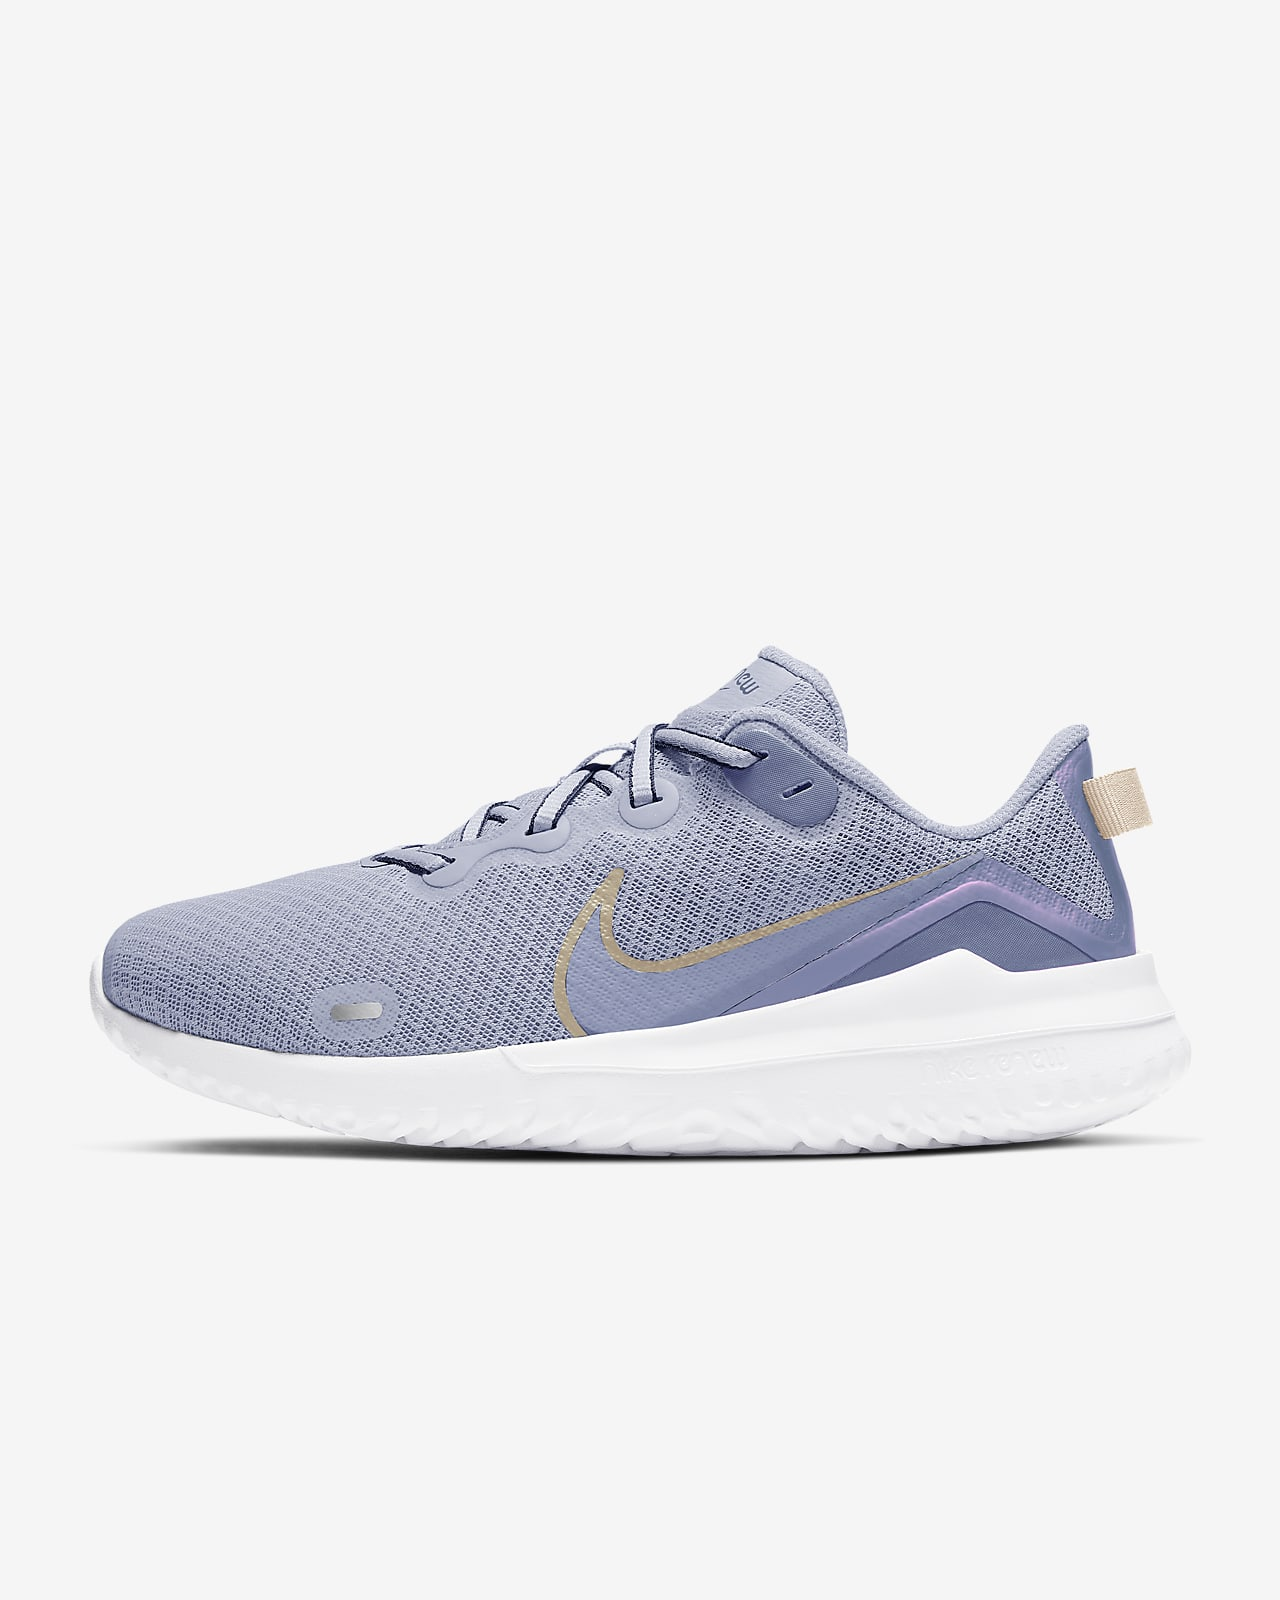 Nike Renew Ride Women's Running Shoe